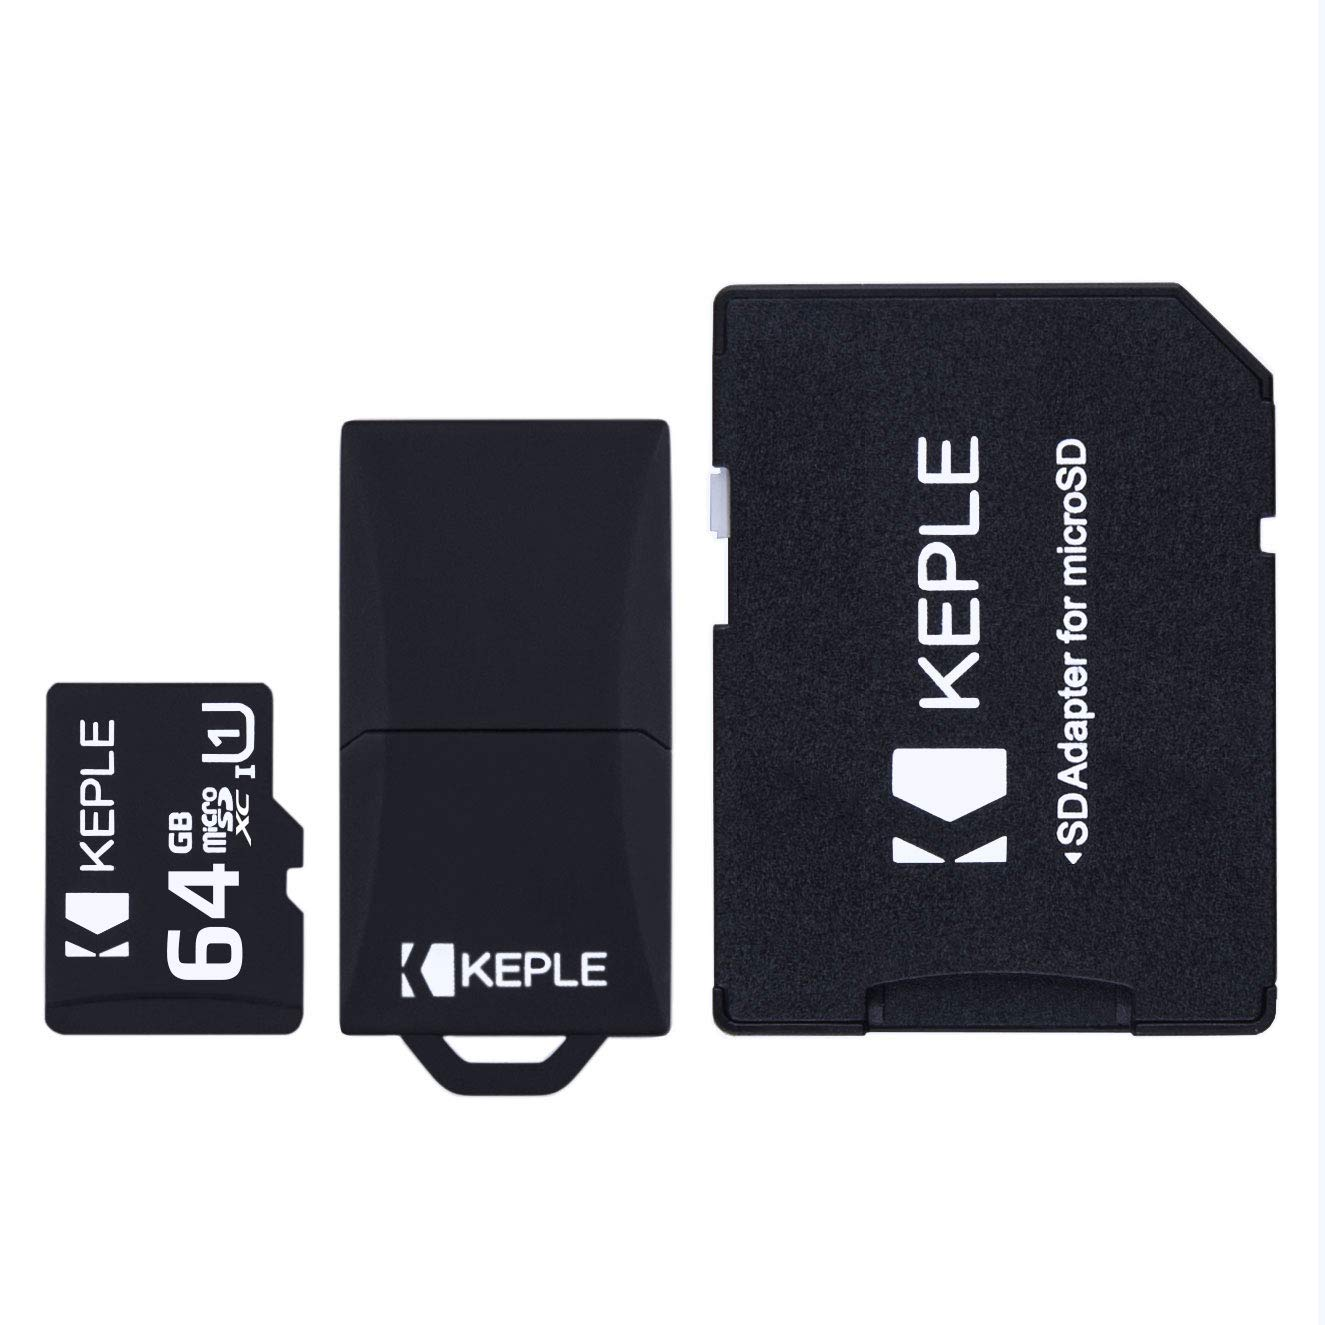 64GB microSD Memory Card by Keple | Micro SD Class 10 for Samsung Galaxy Tab S2 8.0, E SM-T560, S2 SM-T813, A SM-T580, 3 Lite SM-T110, Linx, Tab 4 - ...